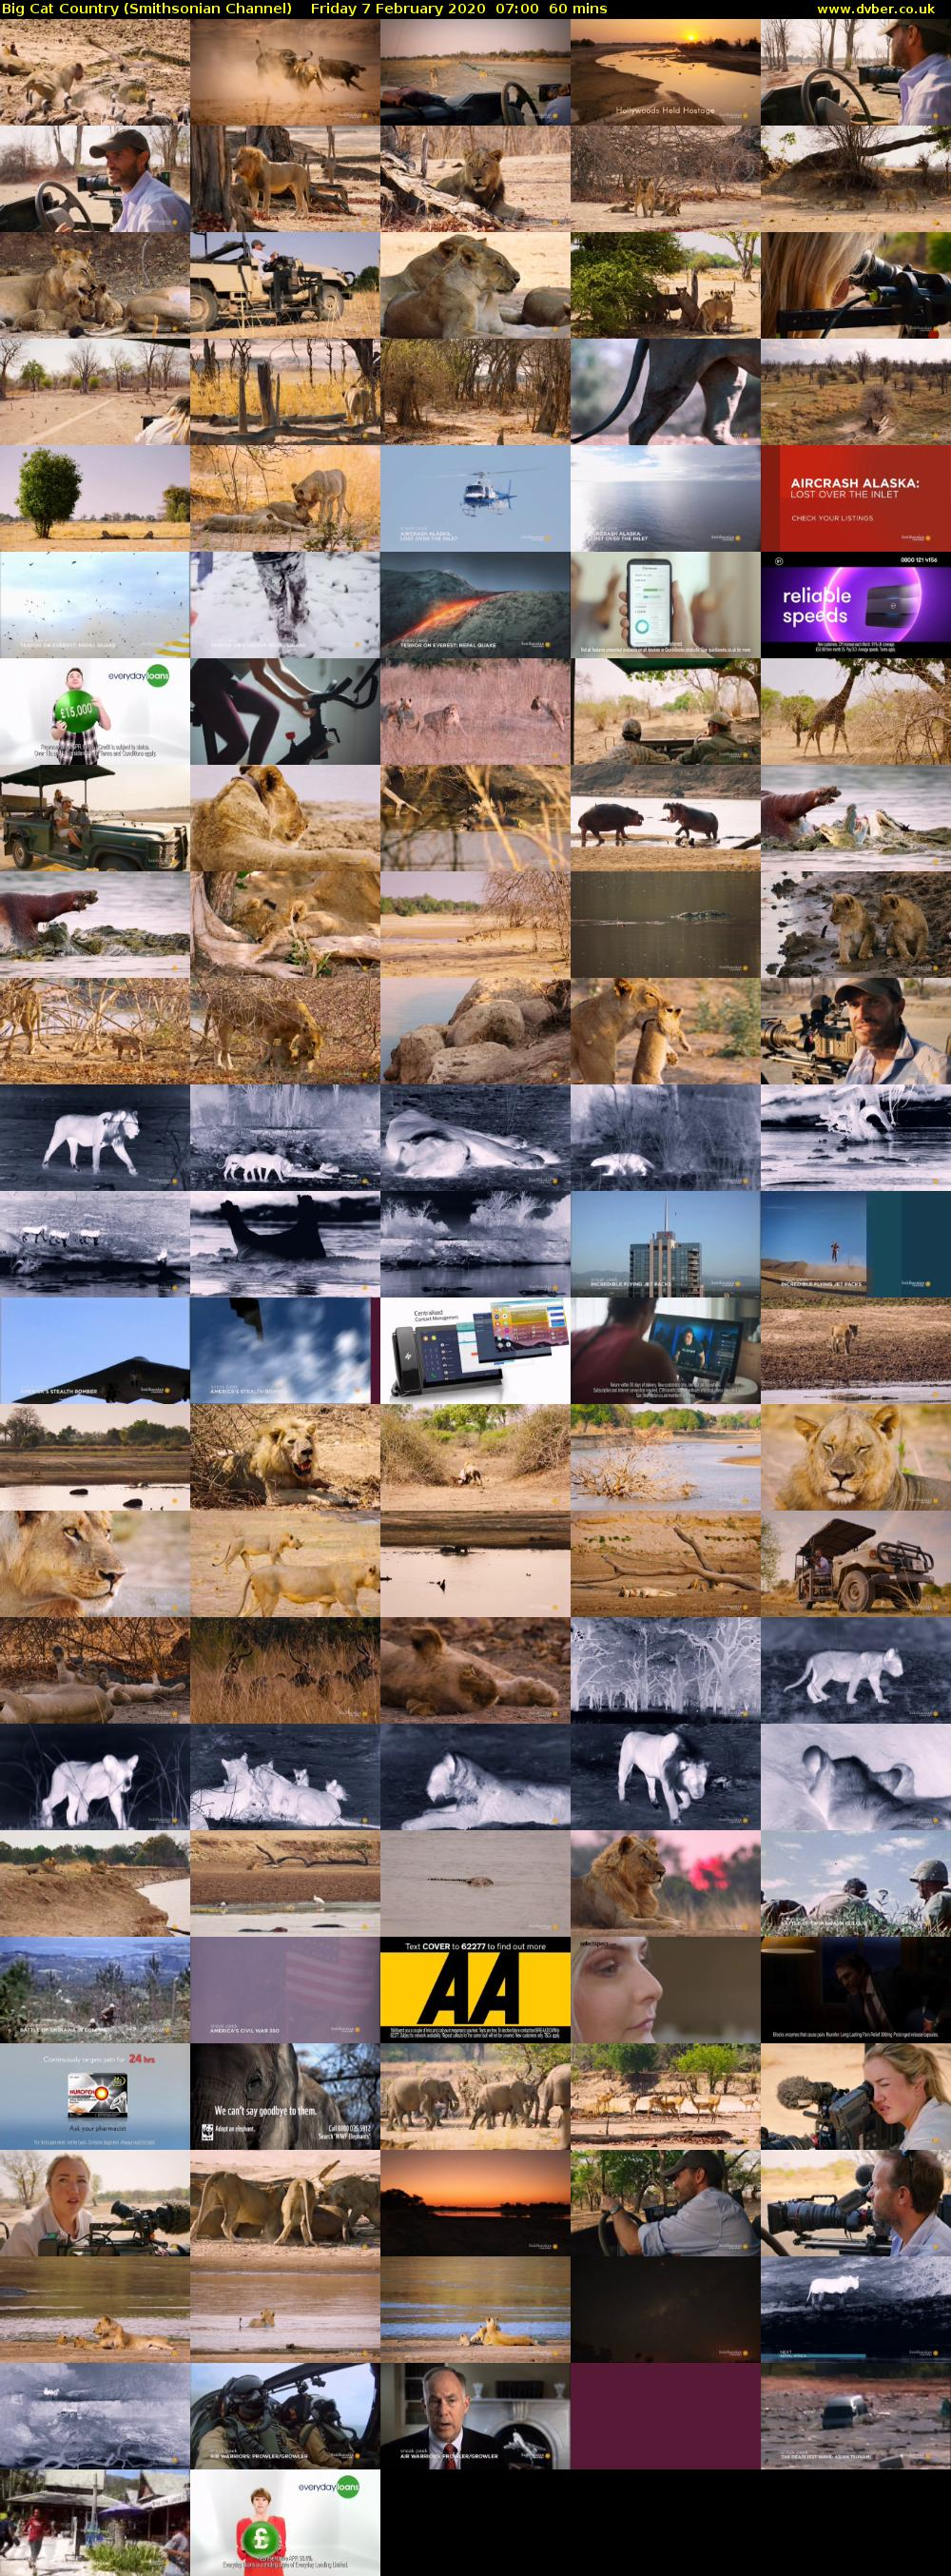 Big Cat Country (Smithsonian Channel) Friday 7 February 2020 07:00 - 08:00